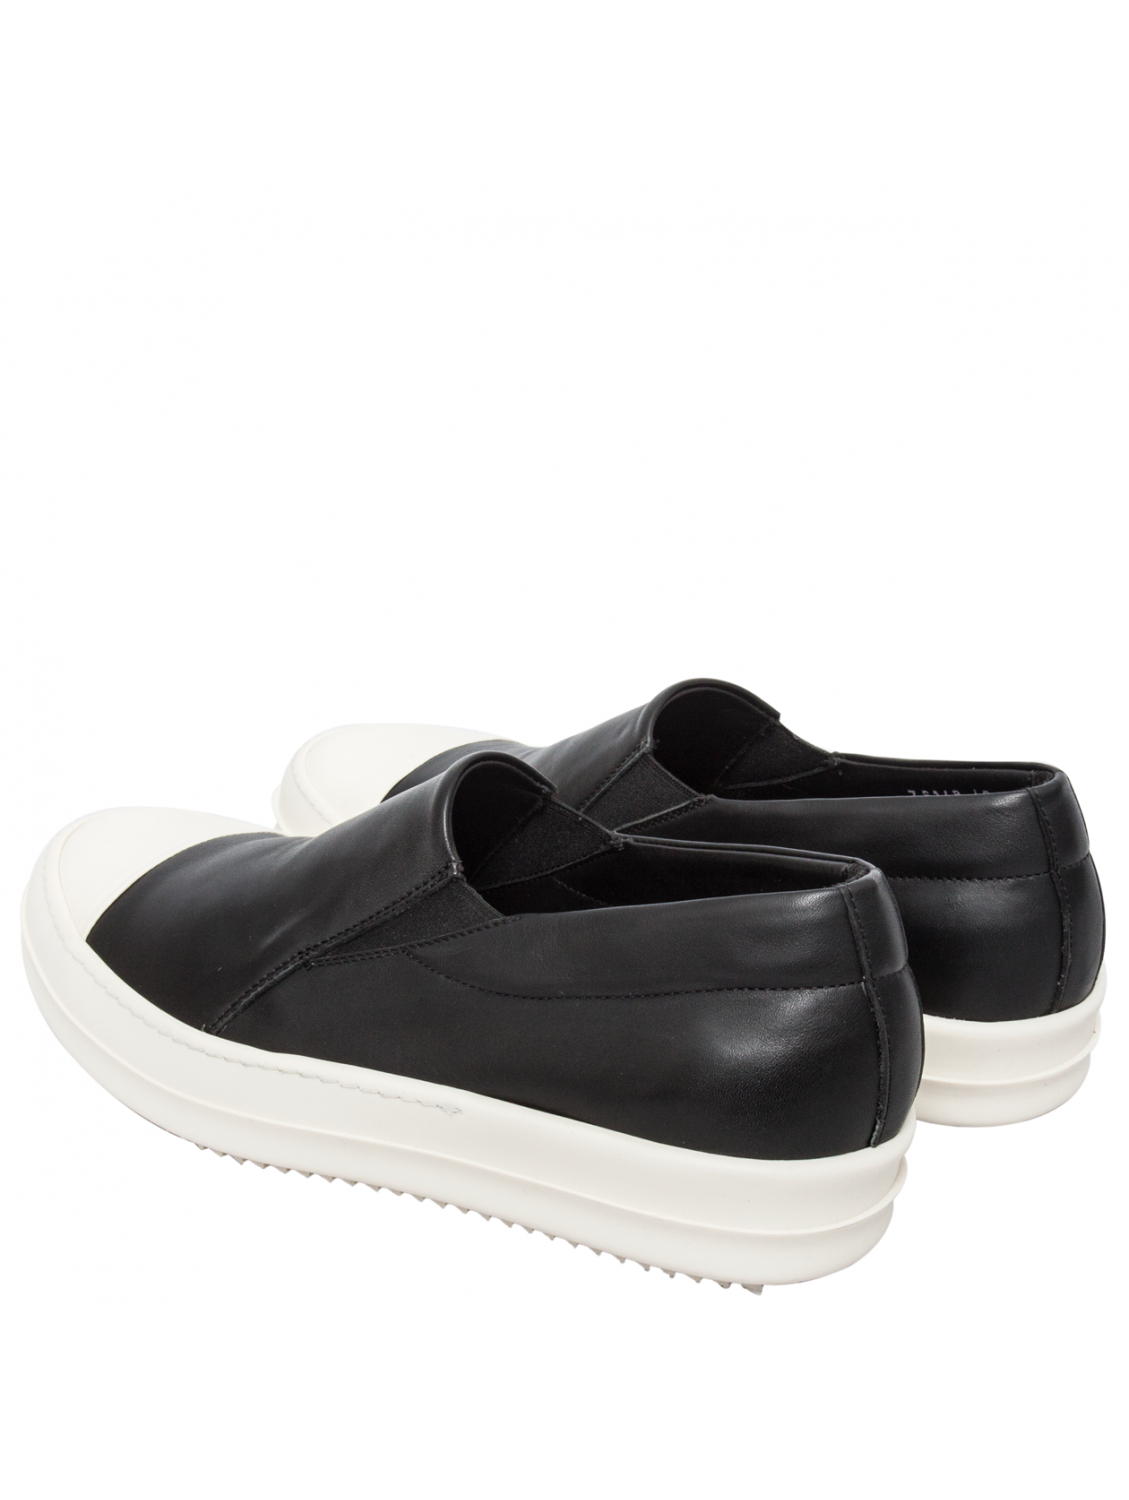 rick owens mens leather boat sneakers black in black for